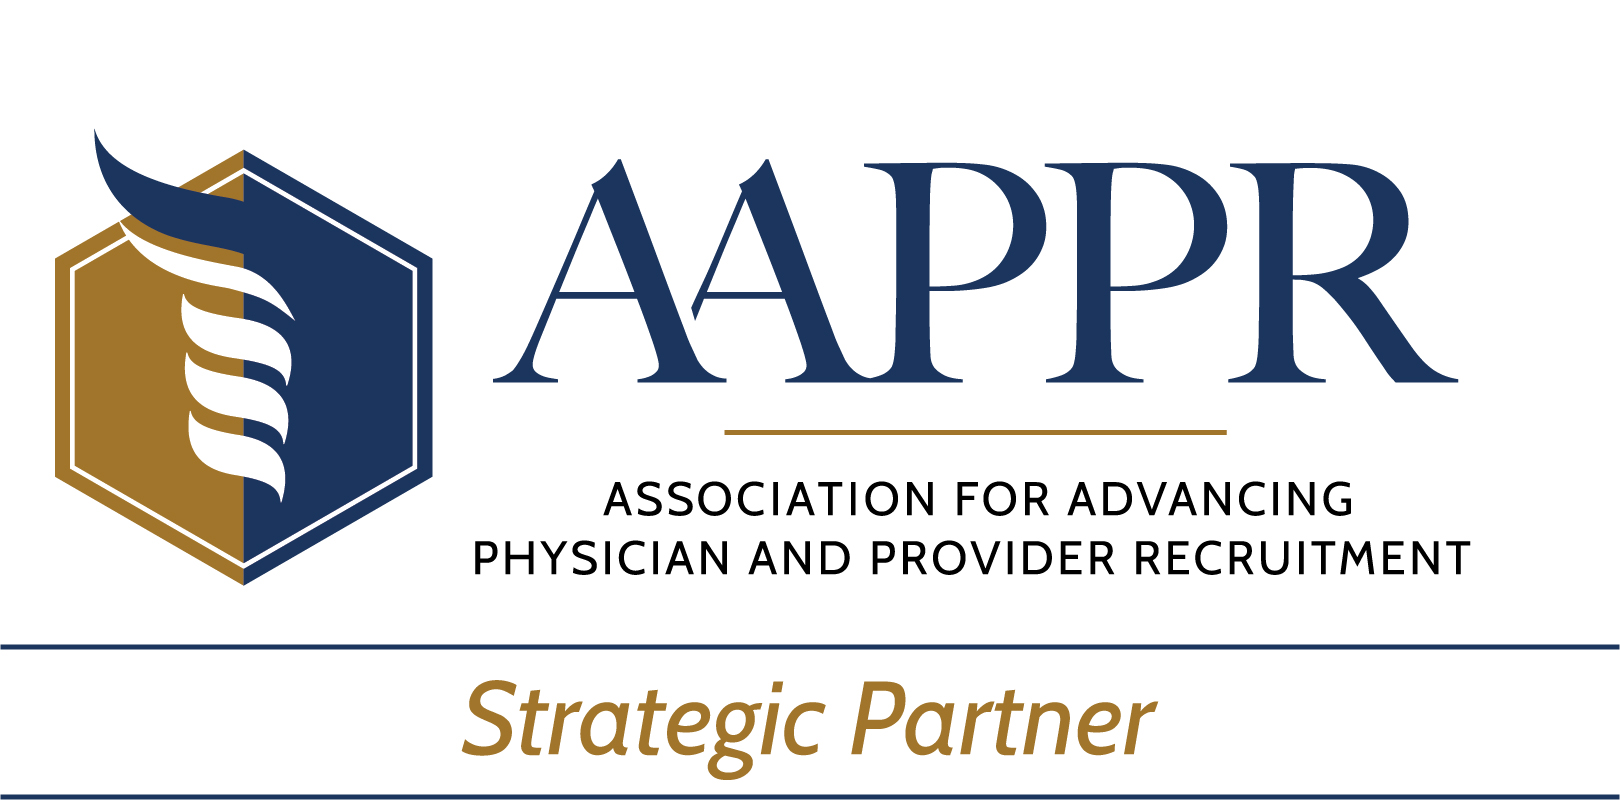 ASPR Strategic Partner Logo